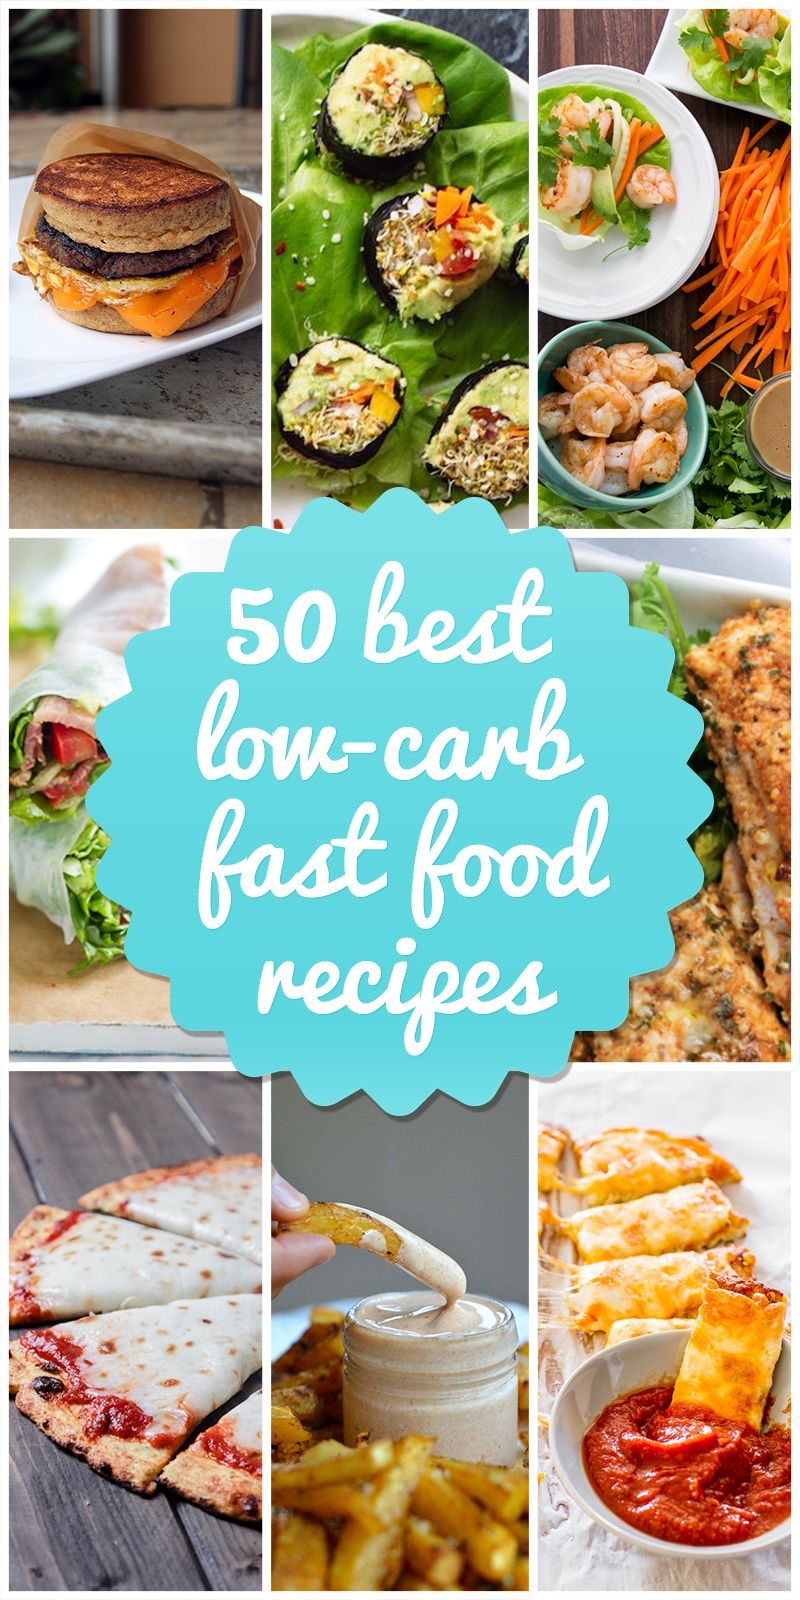 Make your own low carb fast food low carb recipes foods and recipes low carb fast food recipes and ideas forumfinder Images